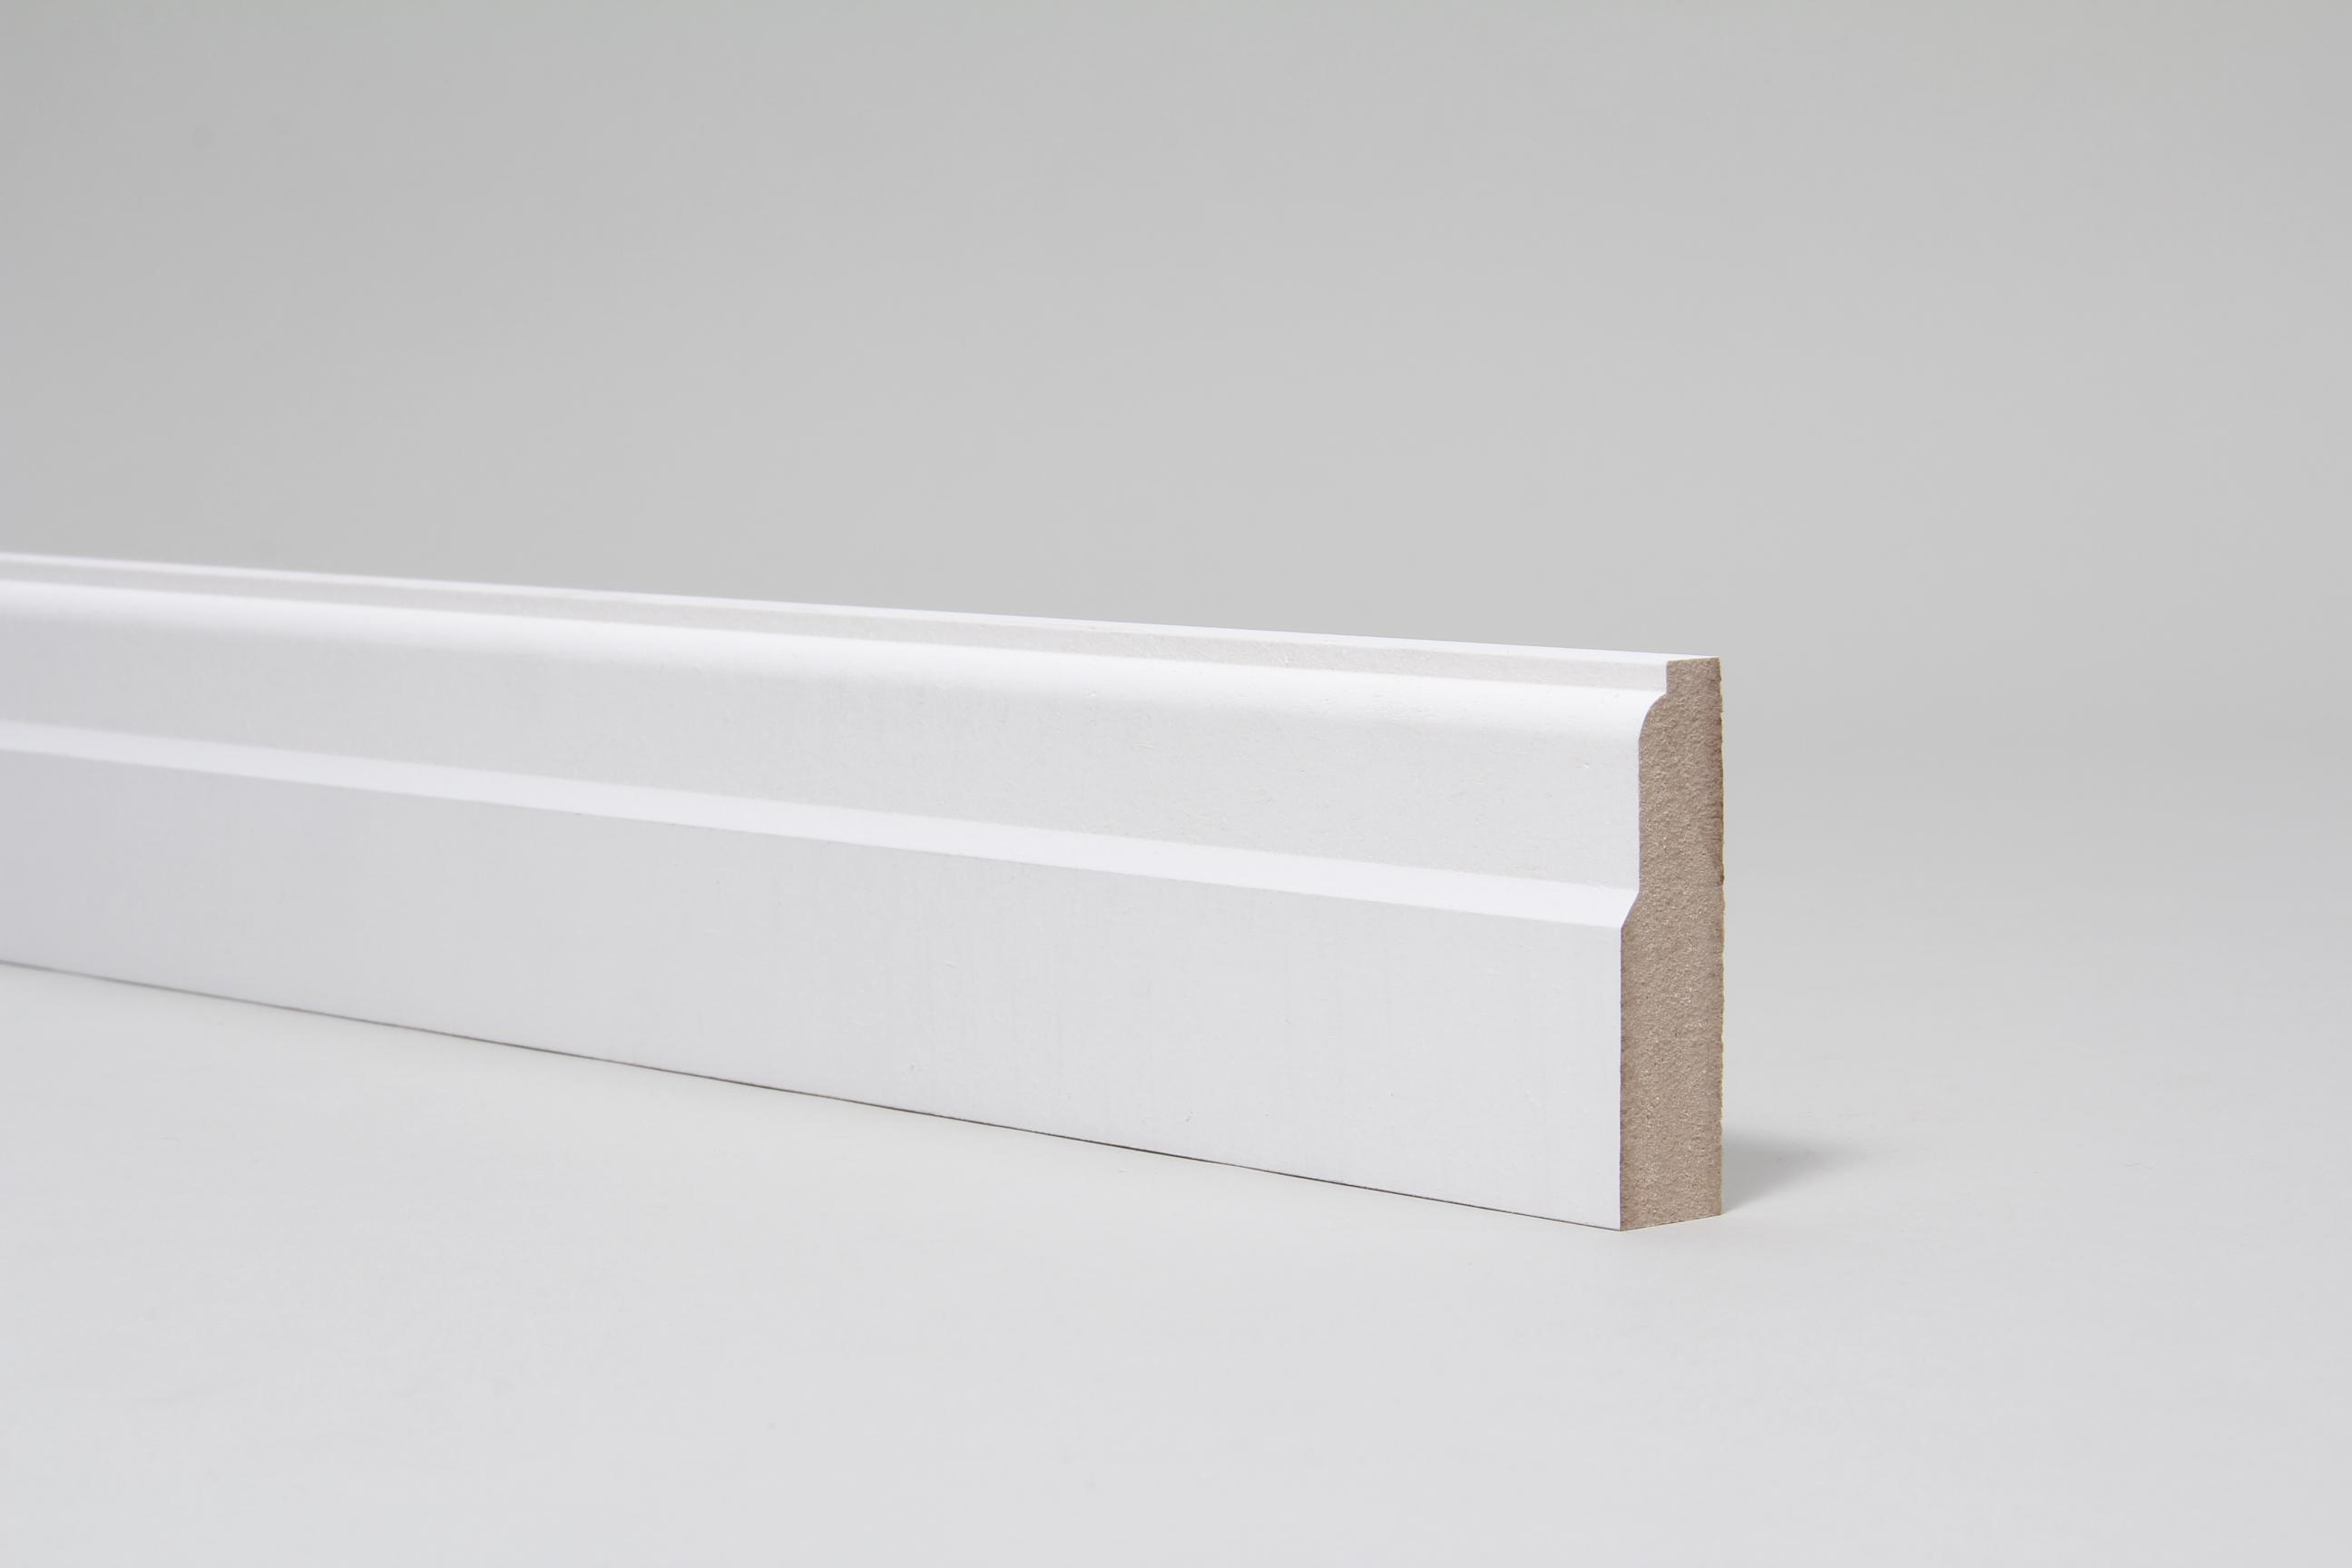 Lambs Tongue  18mm x 68mm Architrave Set Primed